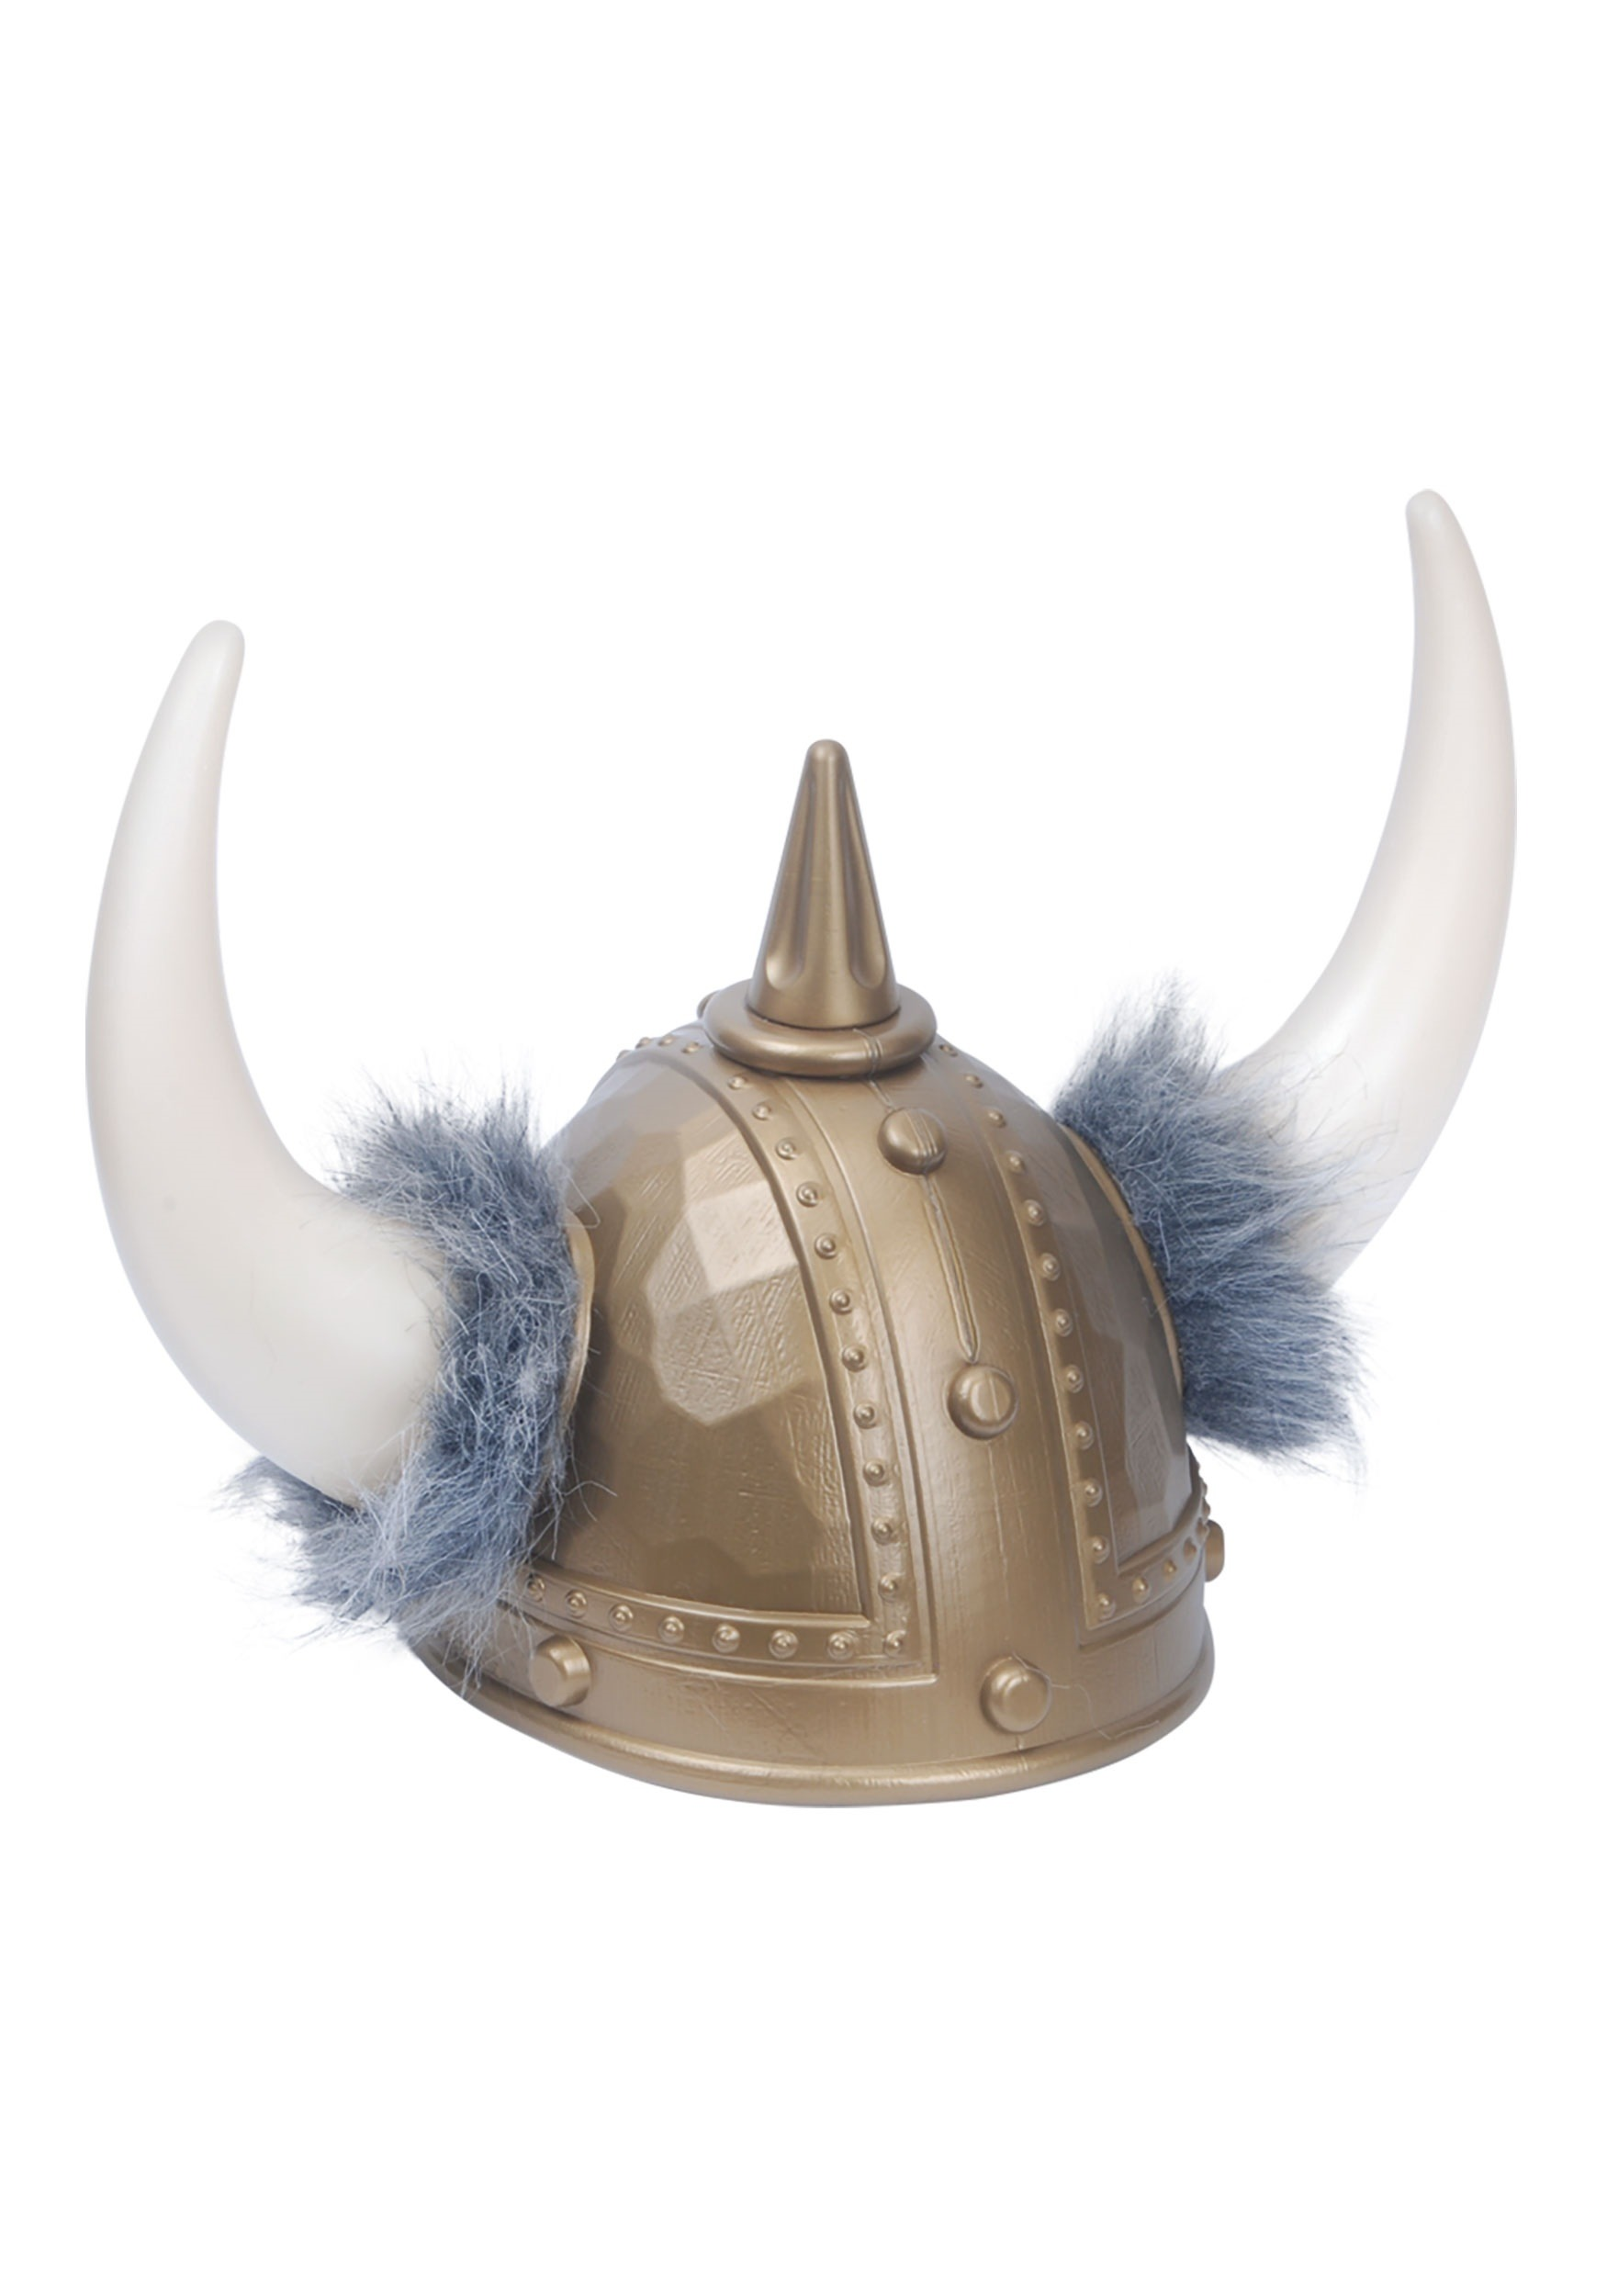 Horned Viking Helmet - Warrior Viking Helmets